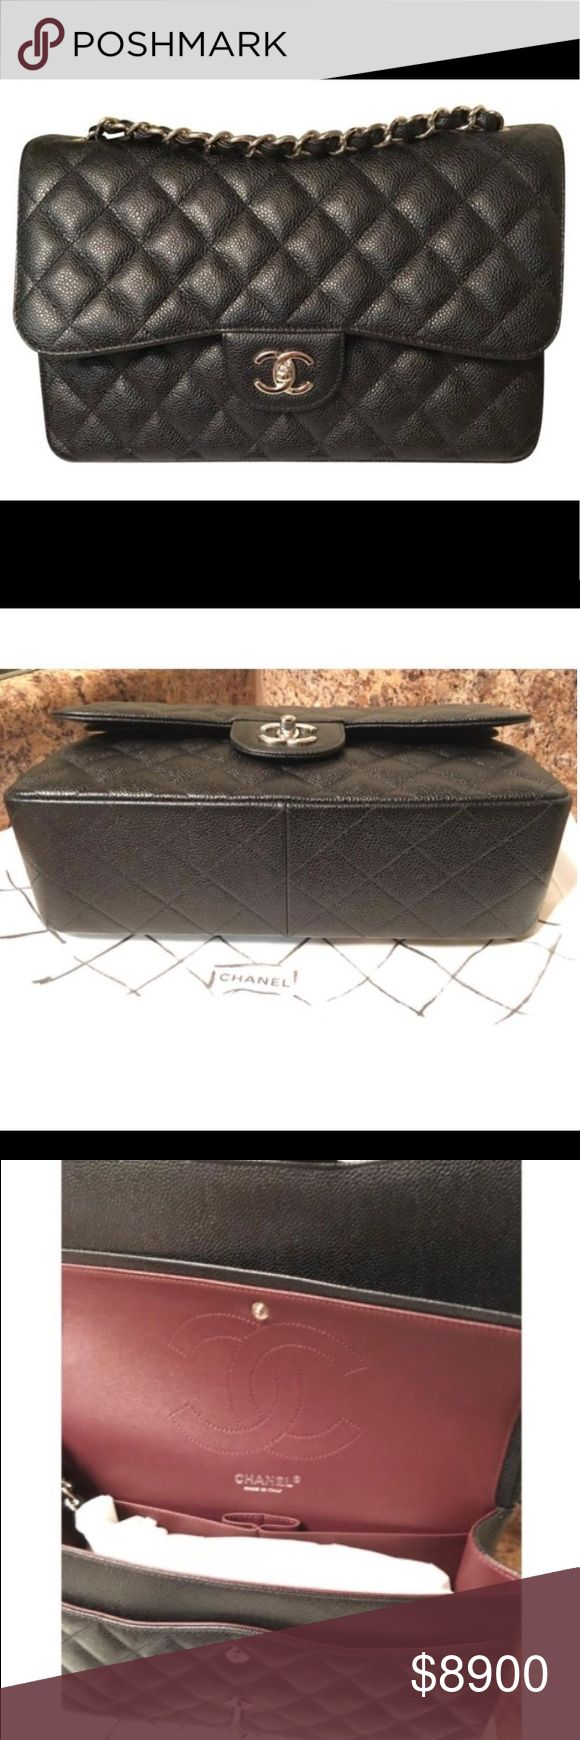 NEW CHANEL JUMBO Authentic CHANEL double flap jumbo black caviar leather silver hardware comes with everything ships out asap. ❌No trades❌ CHANEL Bags Shoulder Bags